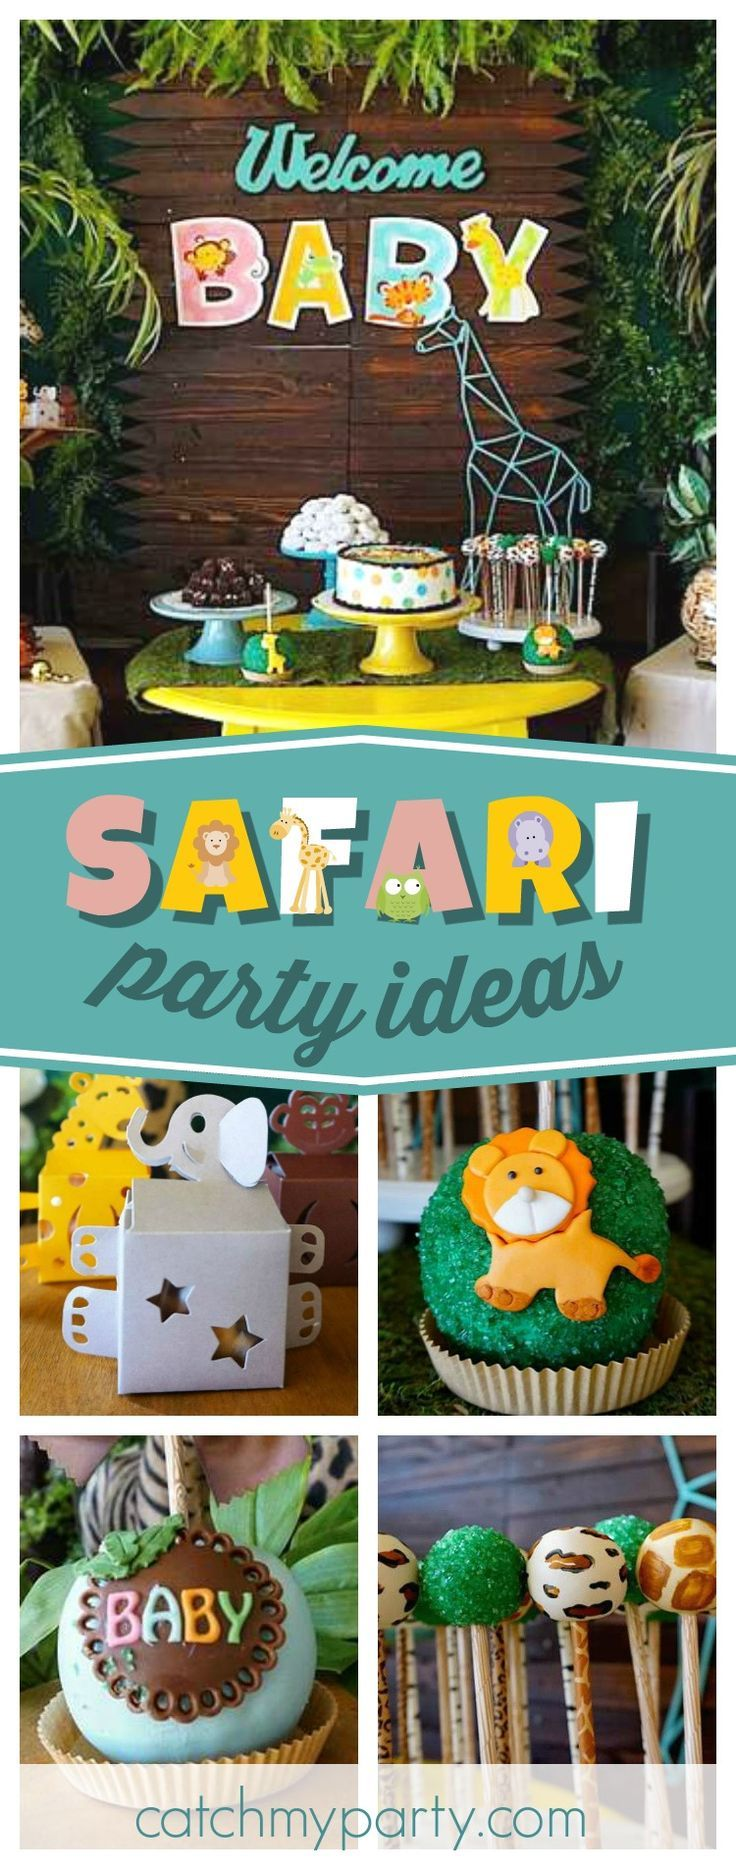 Don't miss this fun Safari Theme Baby Shower. The dessert table is so much fun!! See more party ideas and share yours at CatchMyParty.com